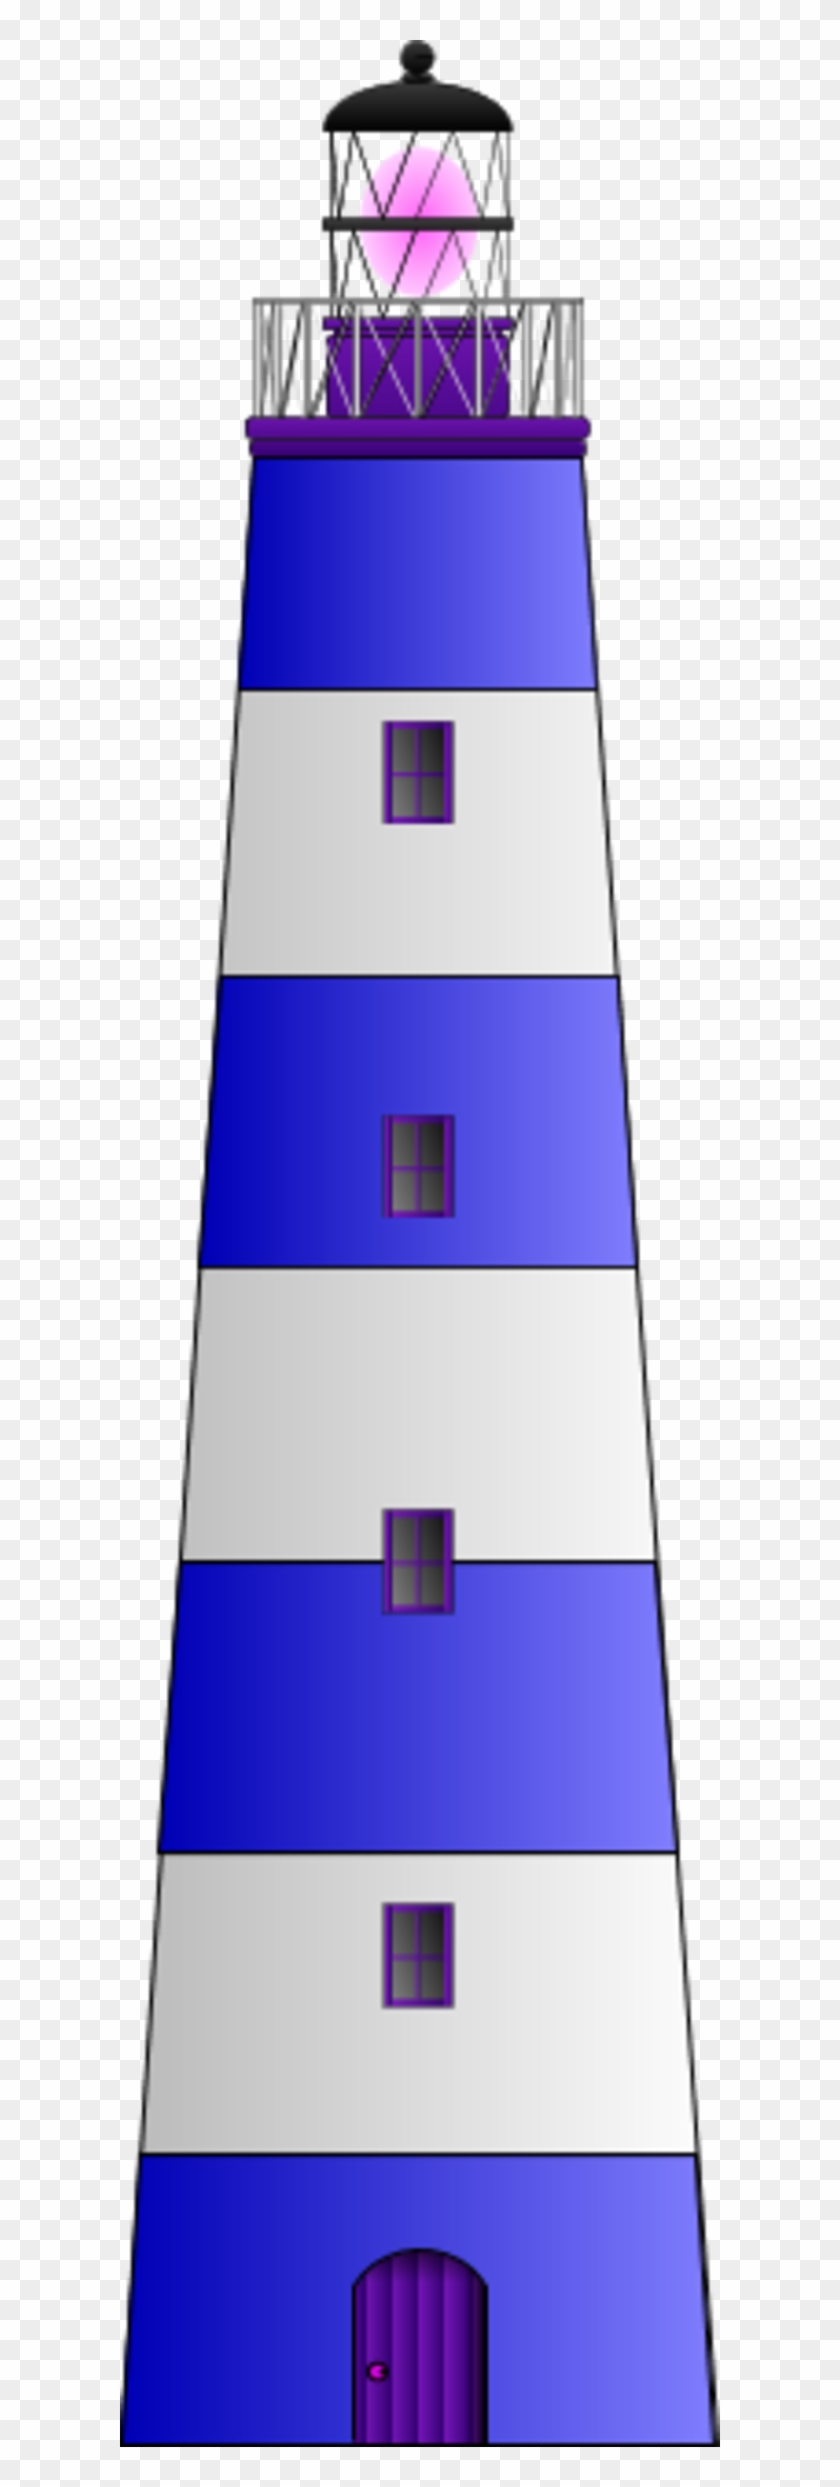 Blue And White Lighthouse #292489